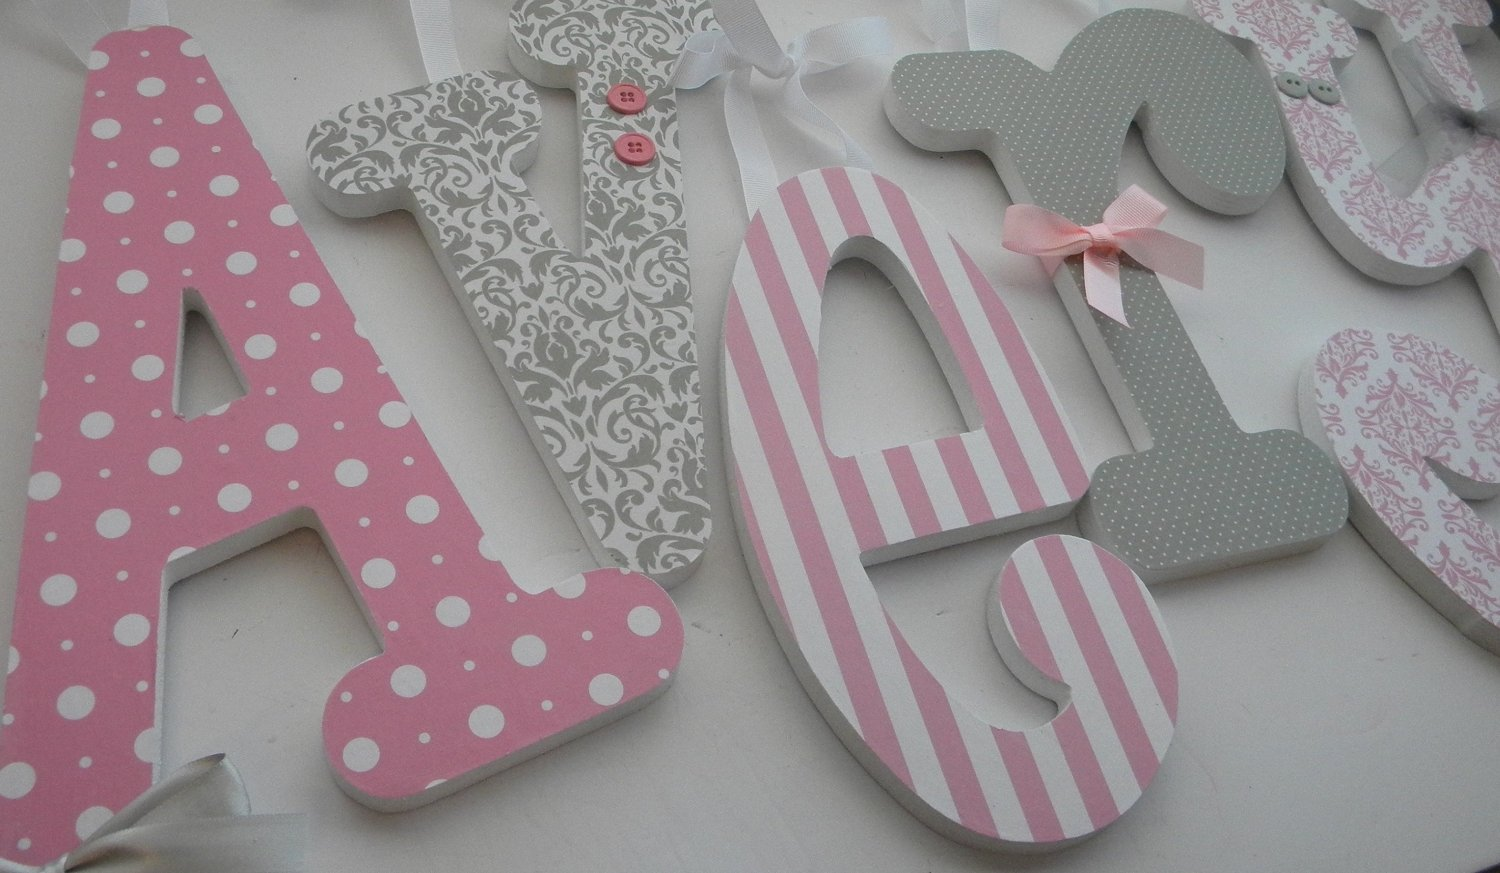 10 Fashionable Ideas For Decorating Wooden Letters pink and grey nursery decor single letter baby girl wooden letters 2020